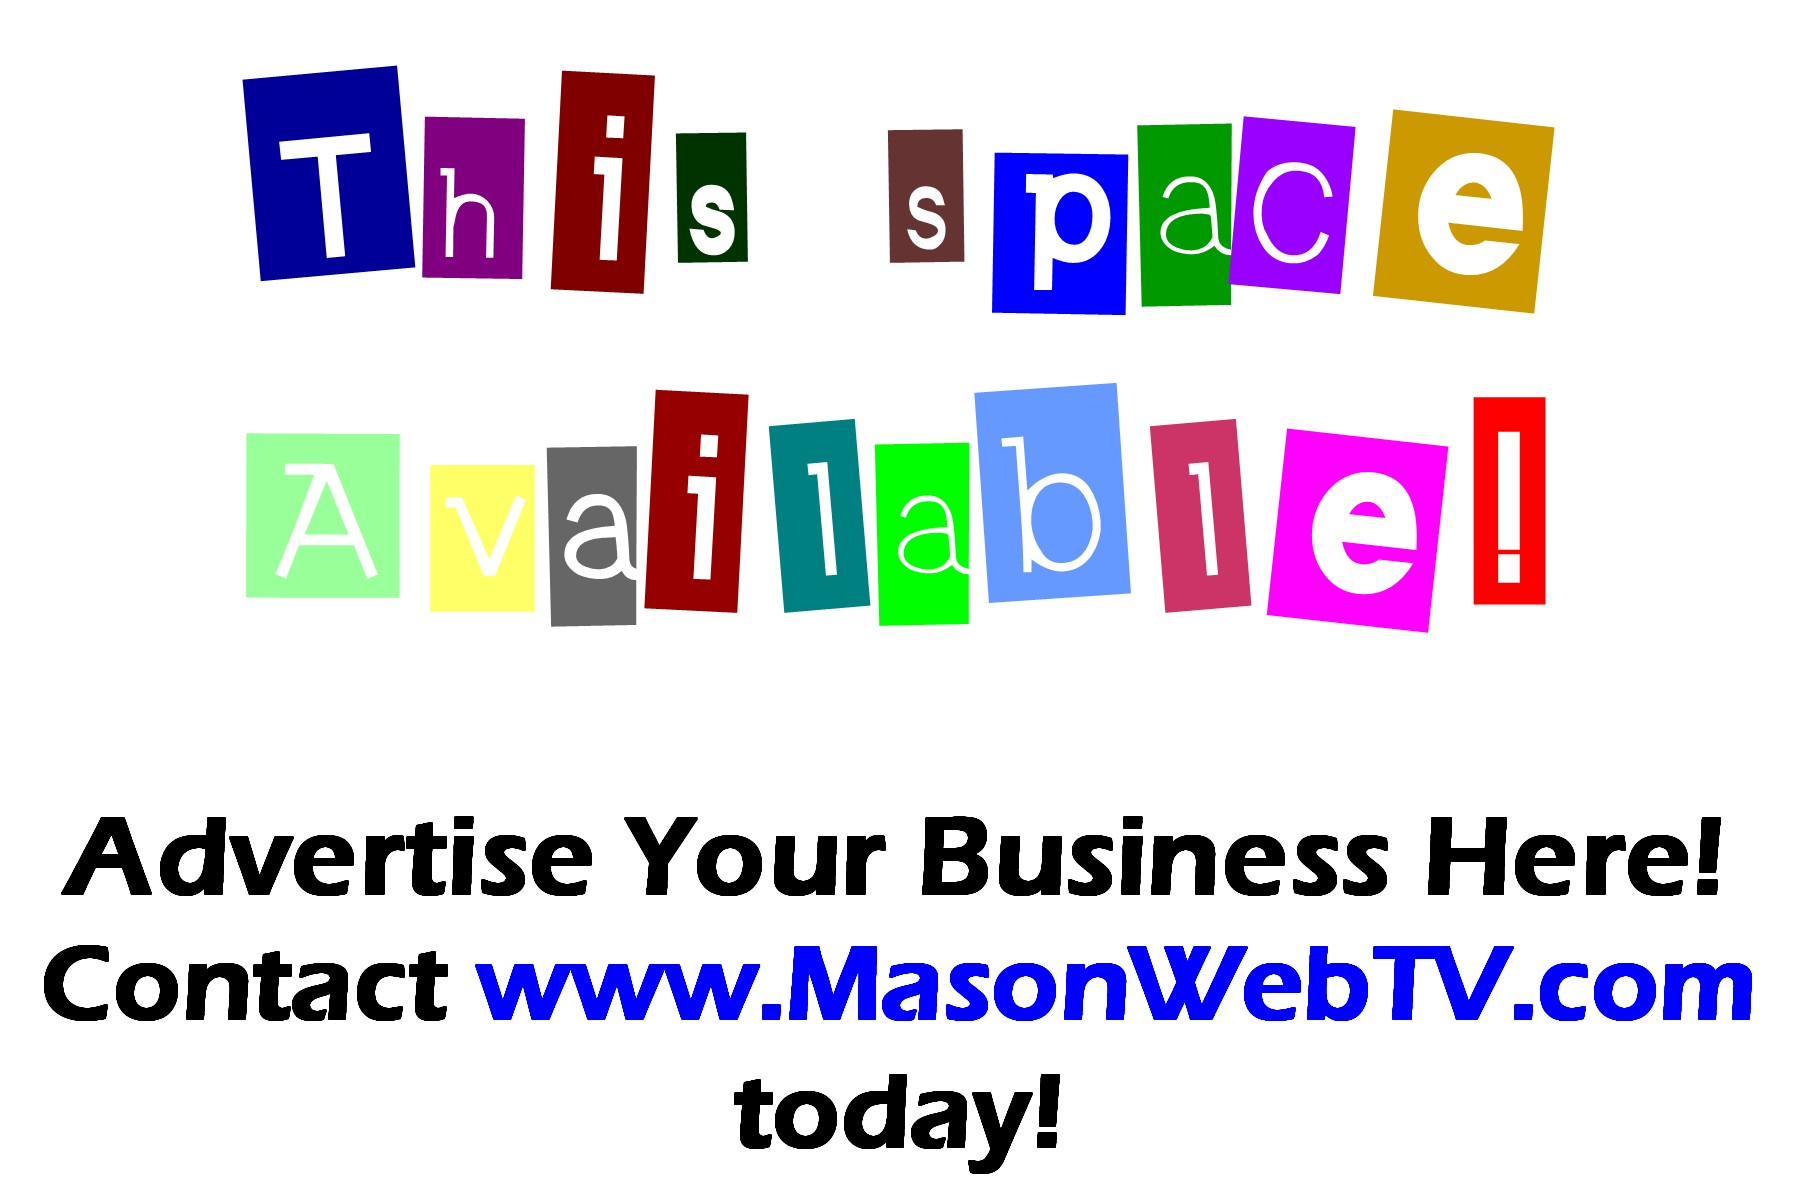 MWTV2 - advertise biz here